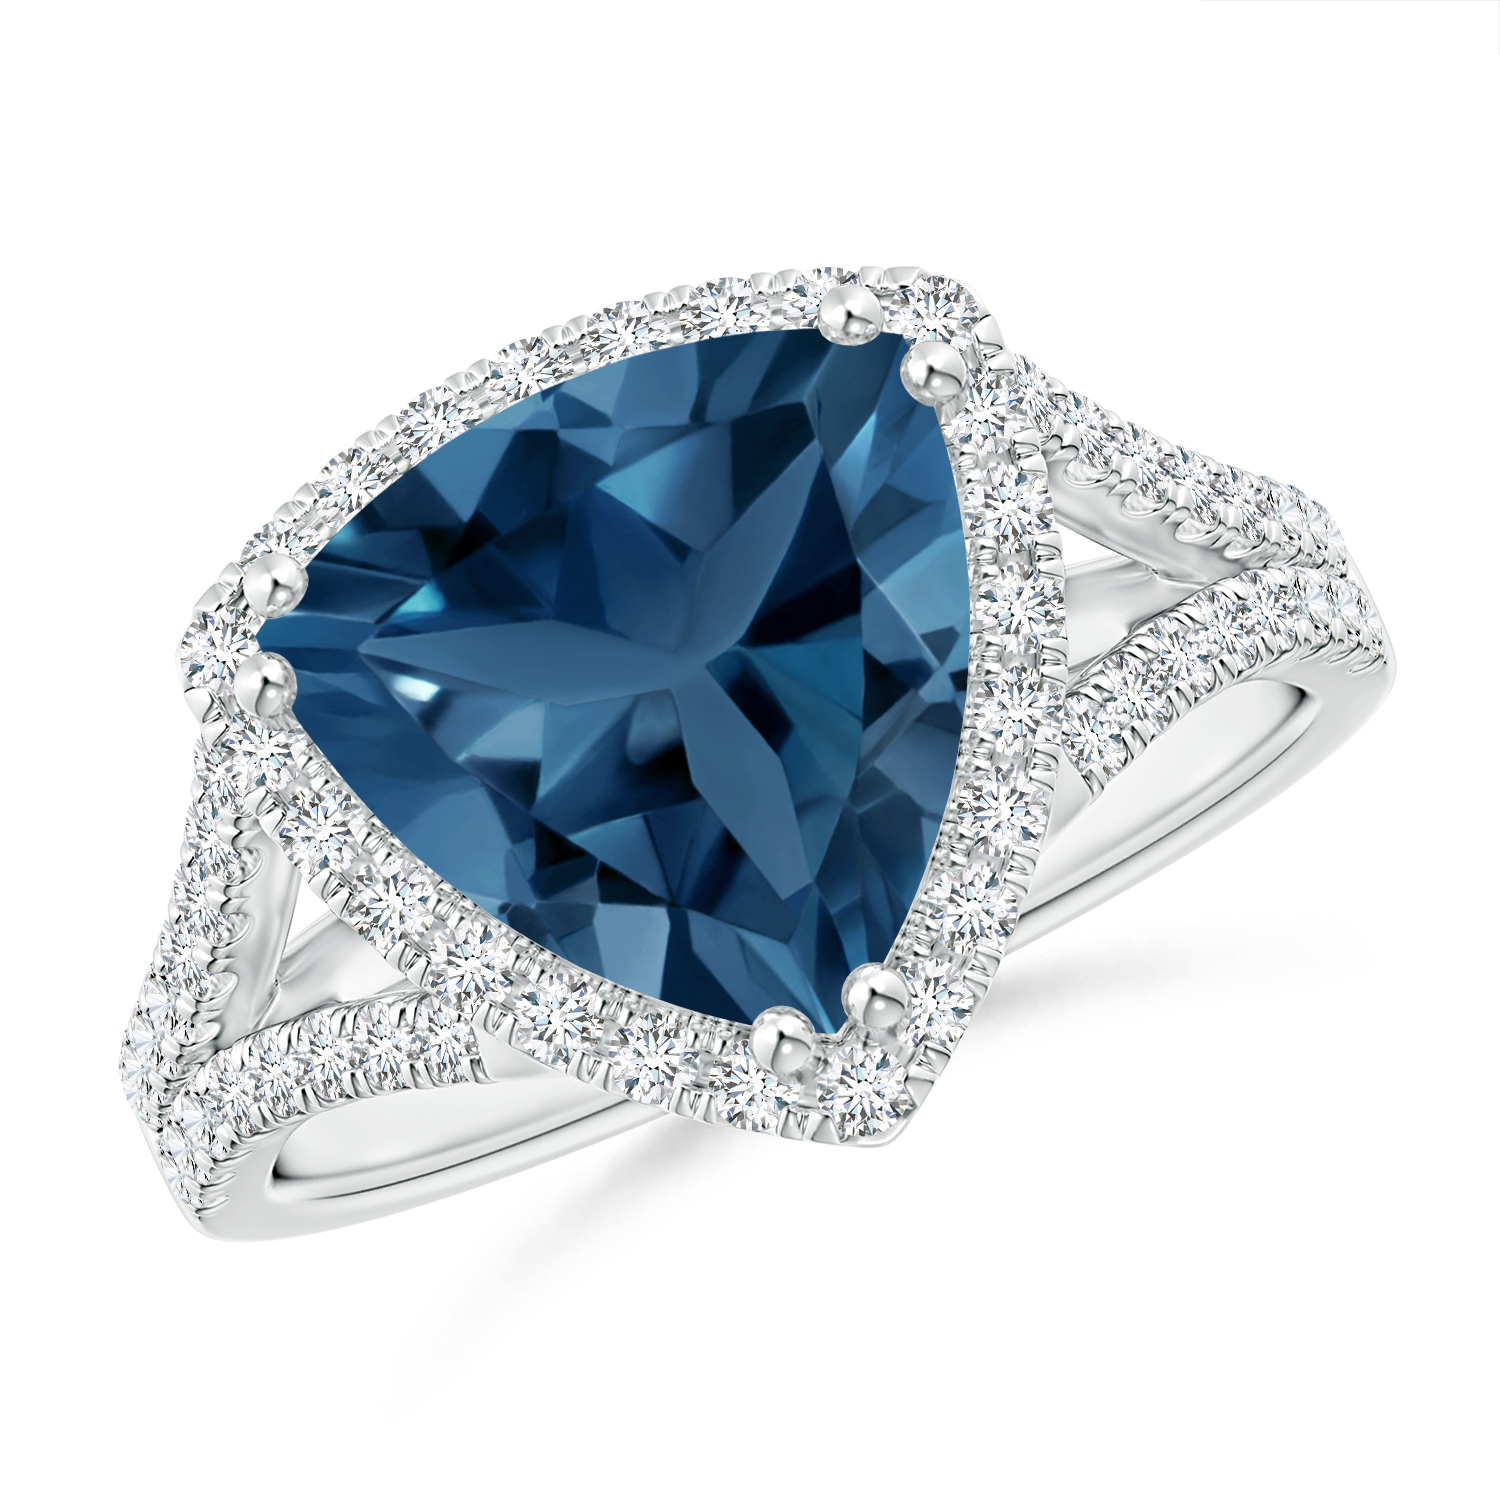 Trillion London Blue Topaz Cocktail Ring with Diamond Accents - Angara.com